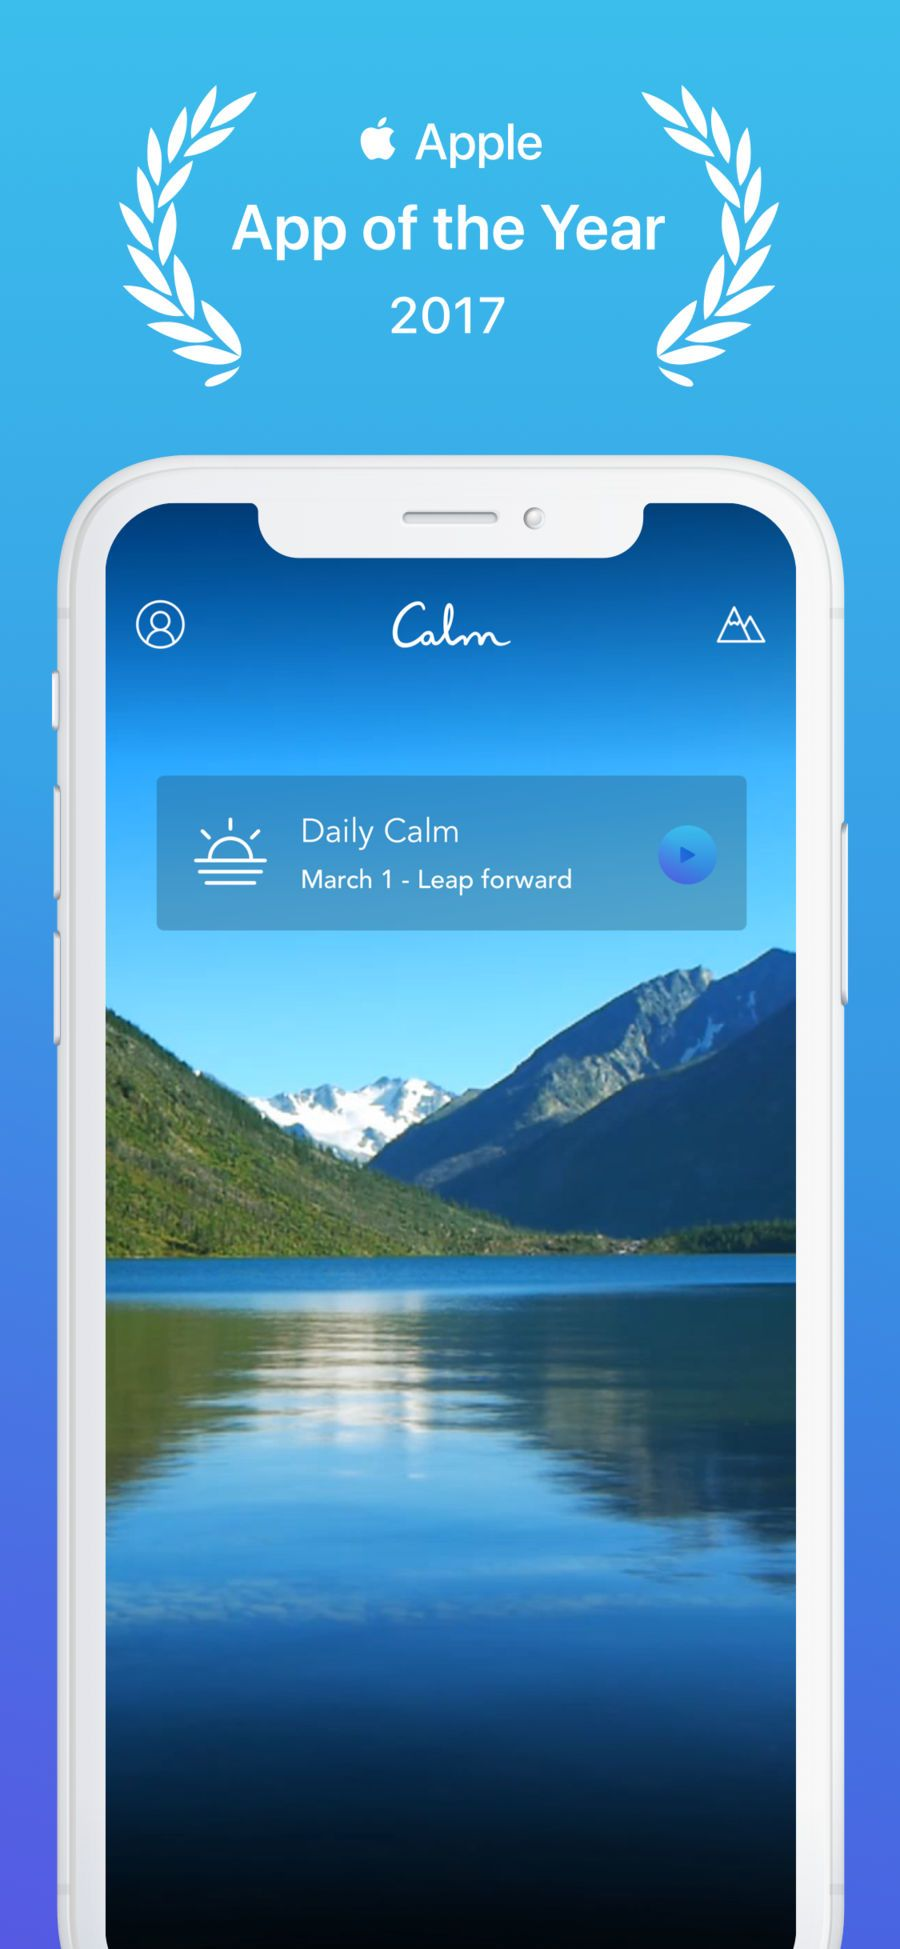 Calm iosLifestyleappapps Free apps for iphone